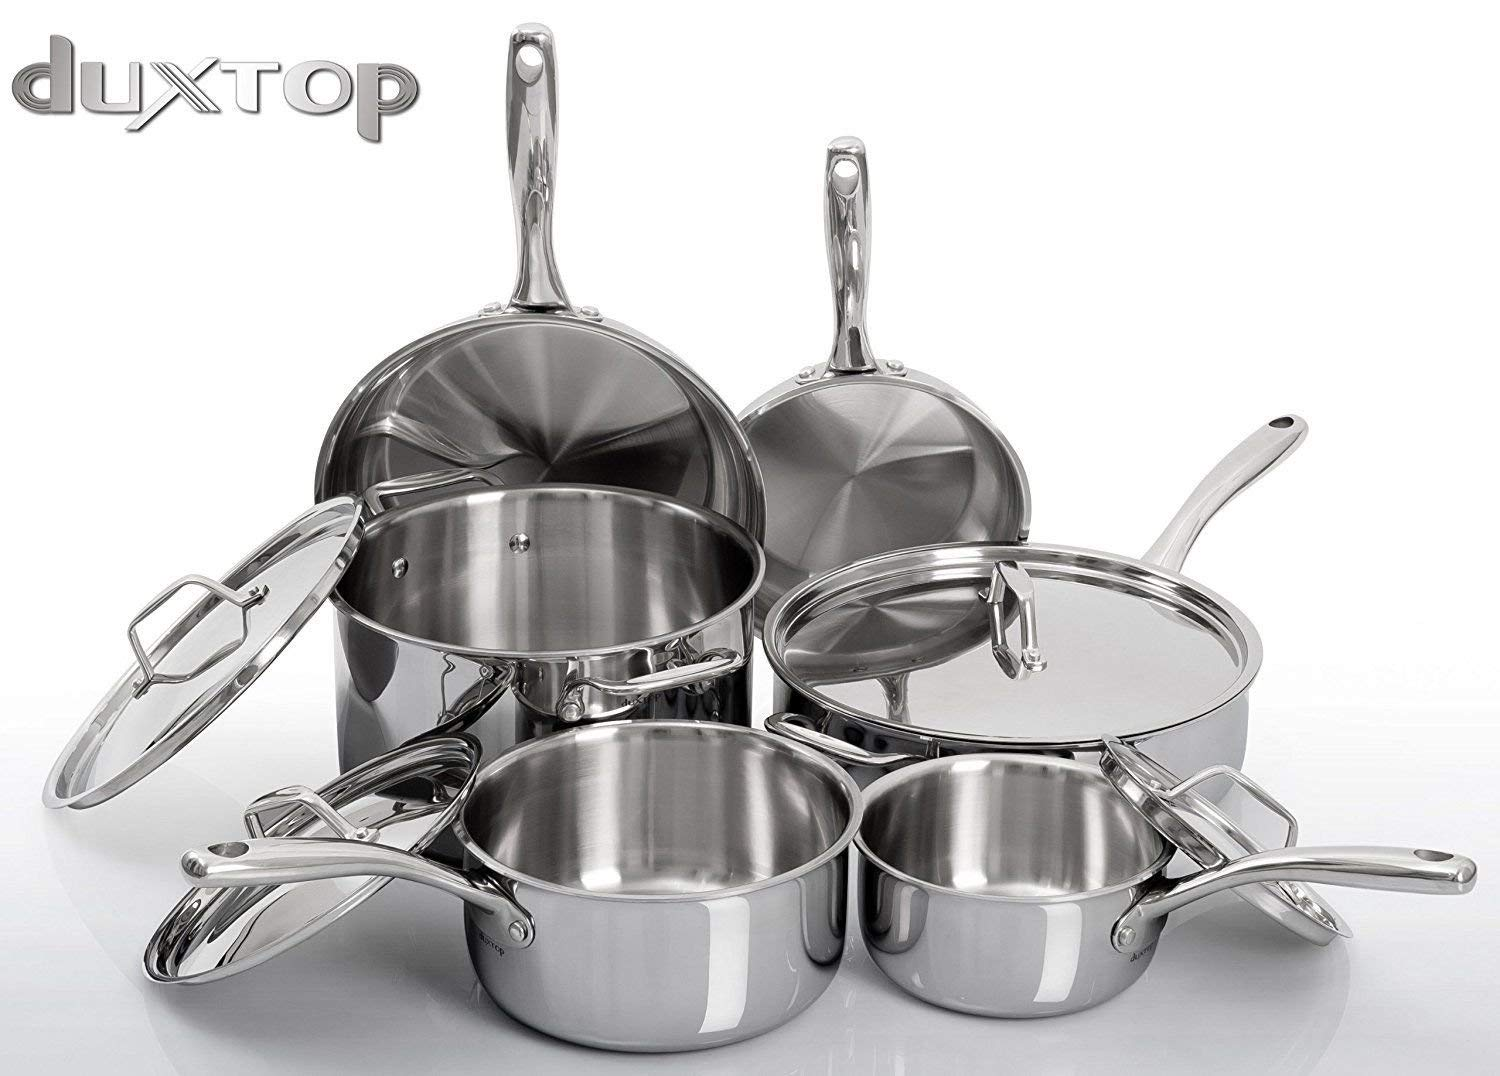 Duxtop Whole-Clad Tri-Ply Stainless Steel Induction Ready Premium Cookware 10-Pc Set Secura duxtop-10PC-1209